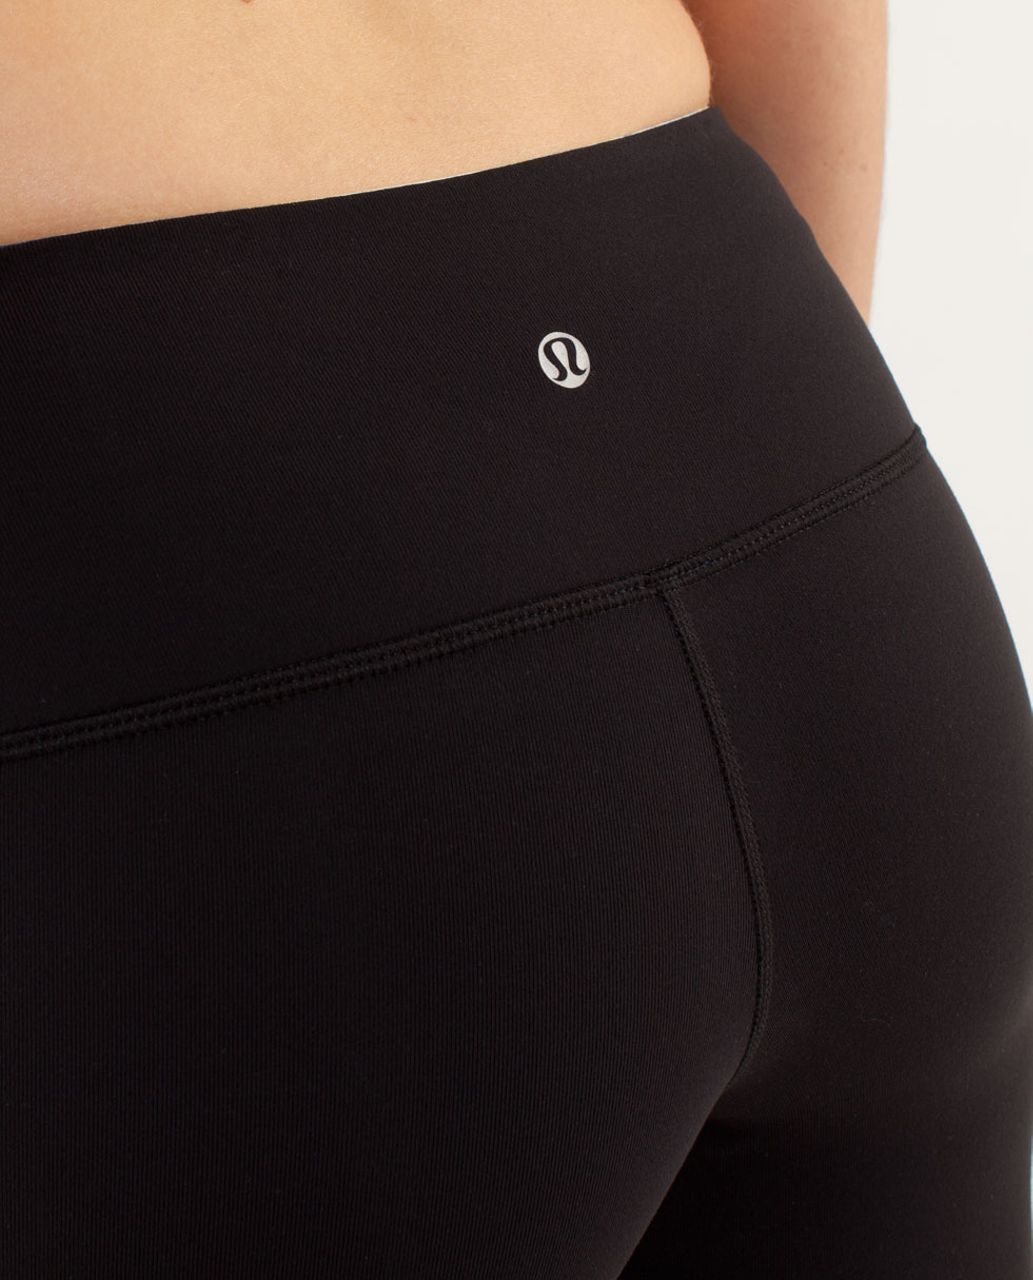 Lululemon Wunder Under Pant *Colour Blocked - Limitless Blue / Black / Wee Are From Space Polar Cream Clarity Yellow